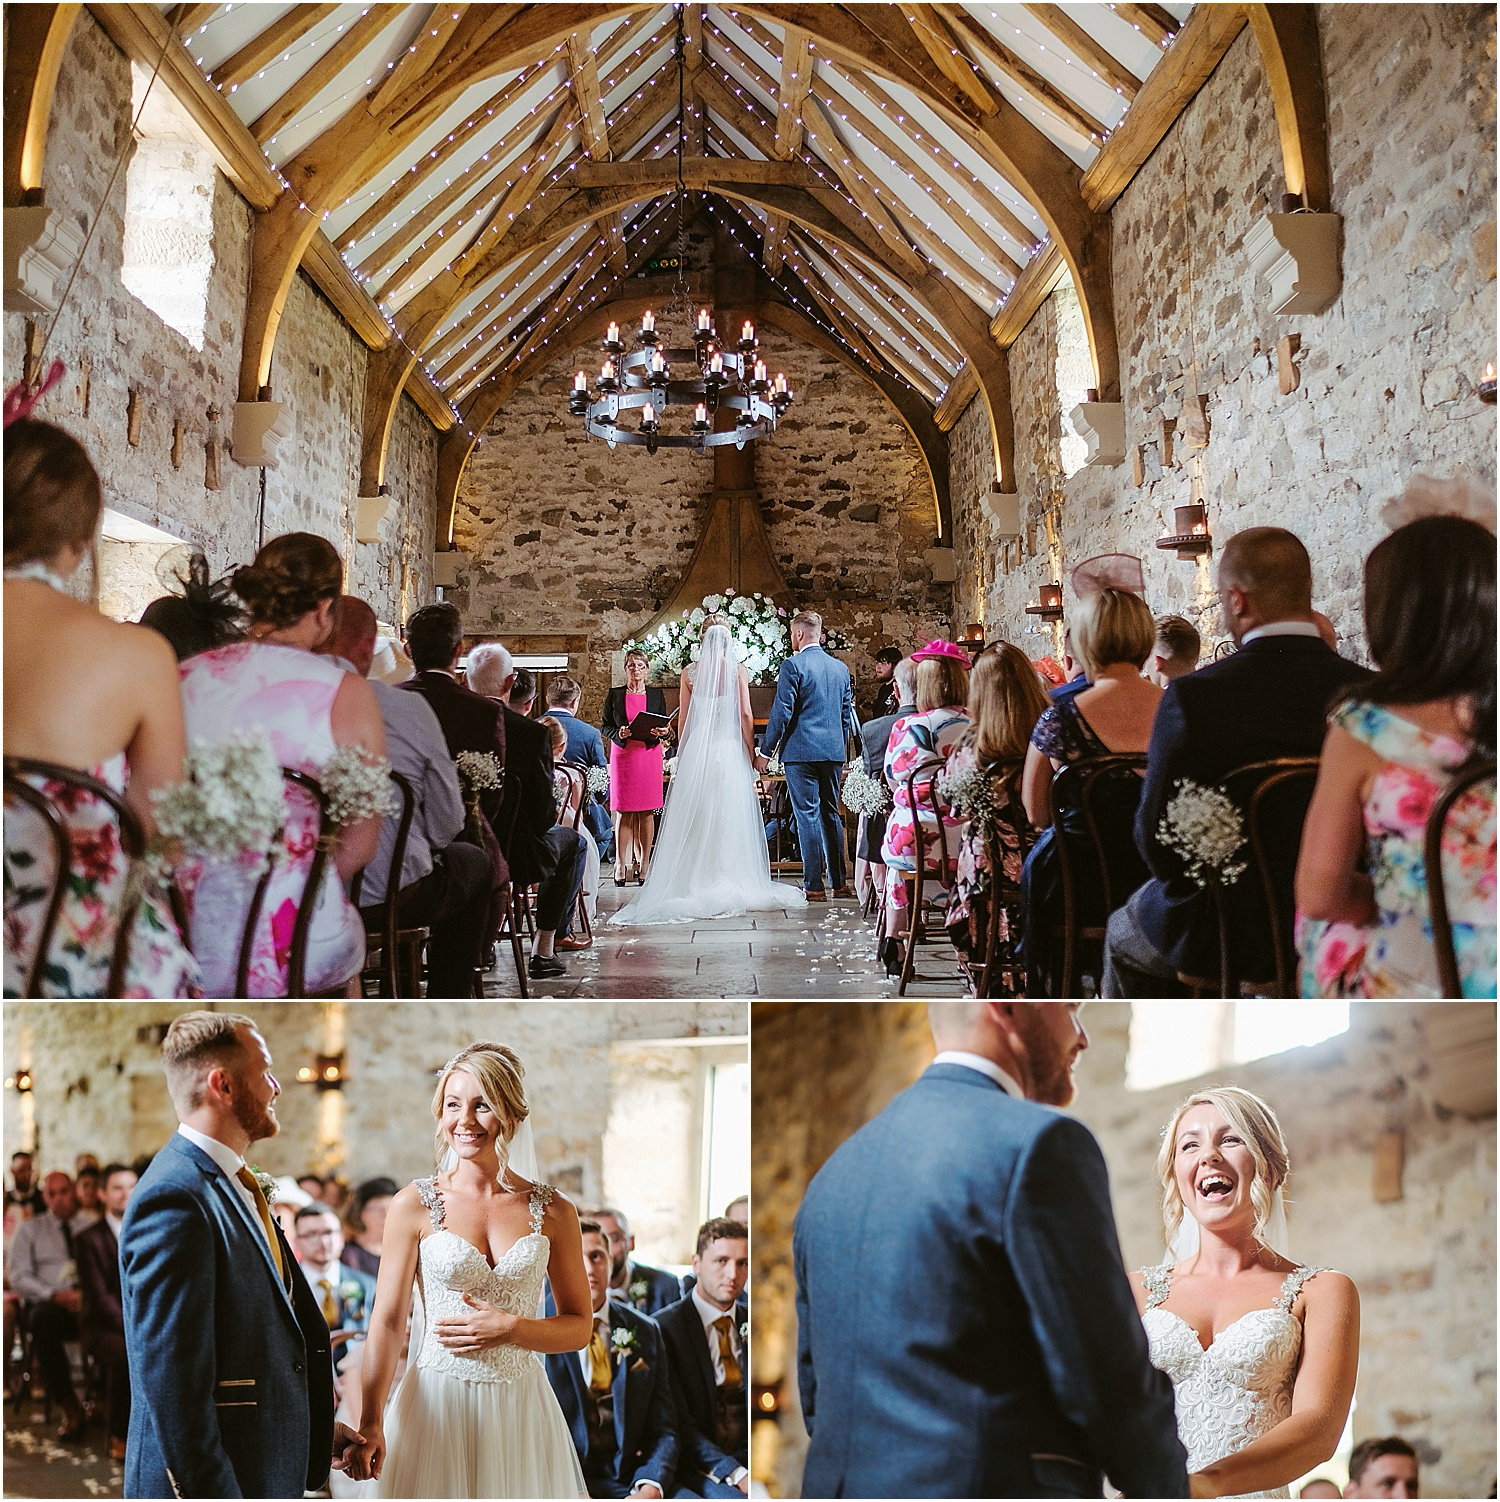 Wedding at Healey Barn - wedding photography by www.2tonephotography.co.uk 041.jpg